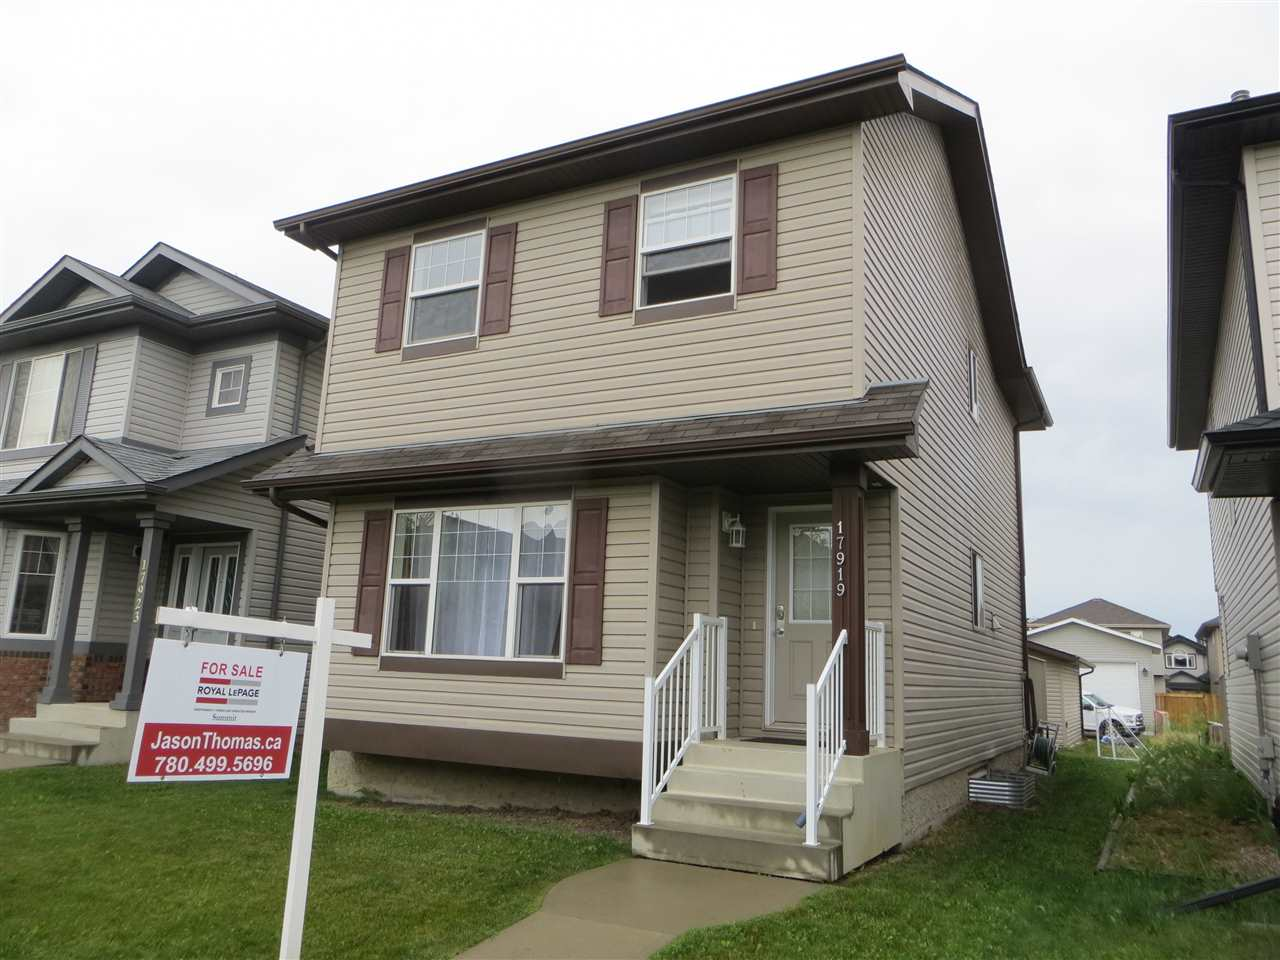 Unbeatable value for this 3 bedroom home with a double garage!  This Park Royal built home is over 1300 sq ft, and hardwood floors welcome you into the bright living room.  The island kitchen is nicely equipped with black appliances, subway tile backsplash, eating bar on the island and abundant cabinet space.  Upstairs, there are 3 bedrooms and the master has room for a king sized bed, enjoy the 3 piece shower ensuite and the large walk in closet.  Yard has been landscaped with a deck and newer double garage.  The basement is undeveloped and ready for your own ideas.  Located on a quiet street in popular Klarvatten.